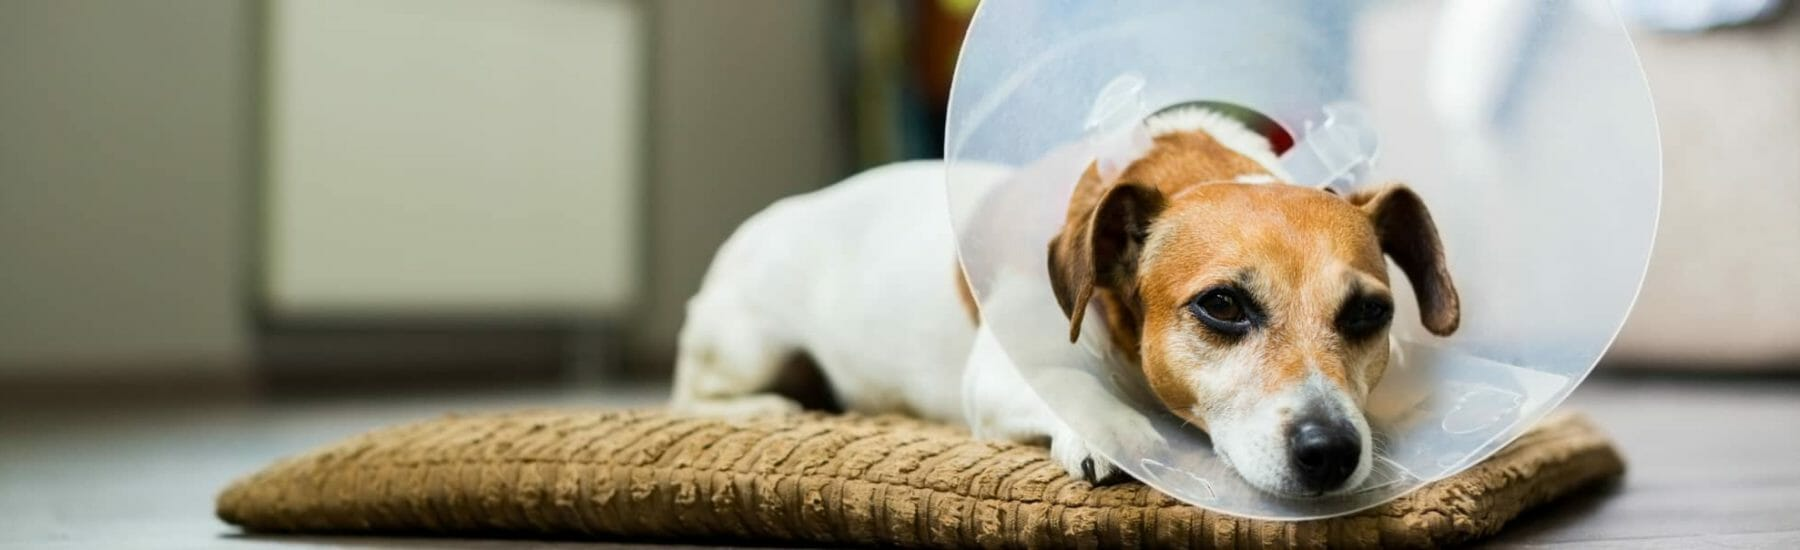 White and orange dog with transparent cone on head